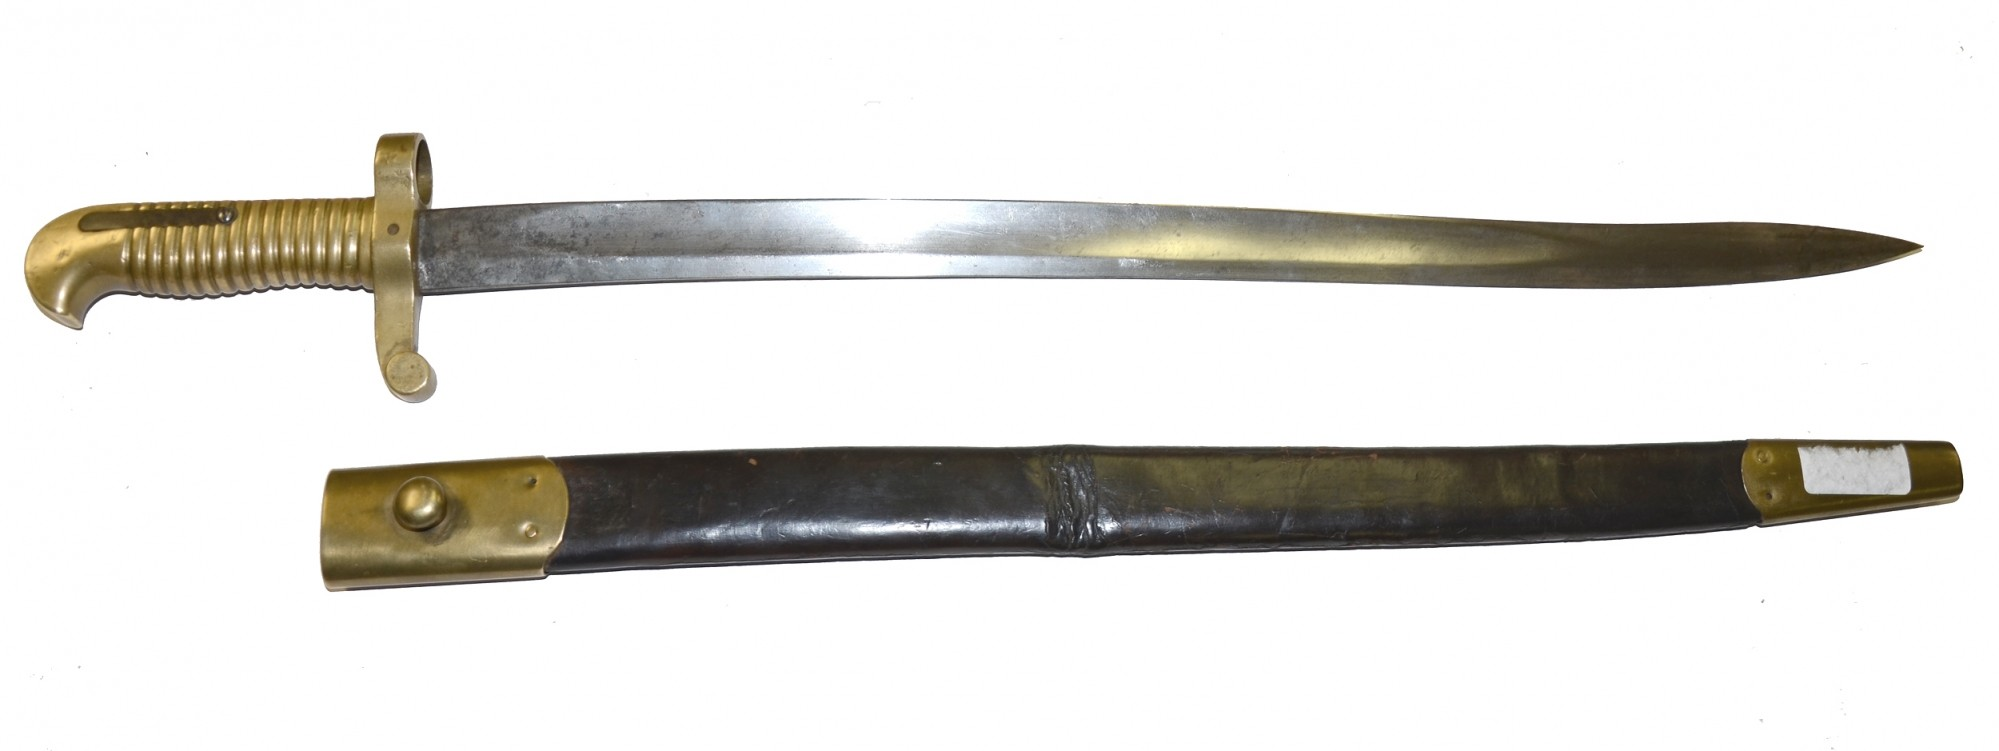 SABER BAYONET FOR ALTERED MODEL 1841 RIFLE OR SHARPS RIFLE WITH SCABBARD